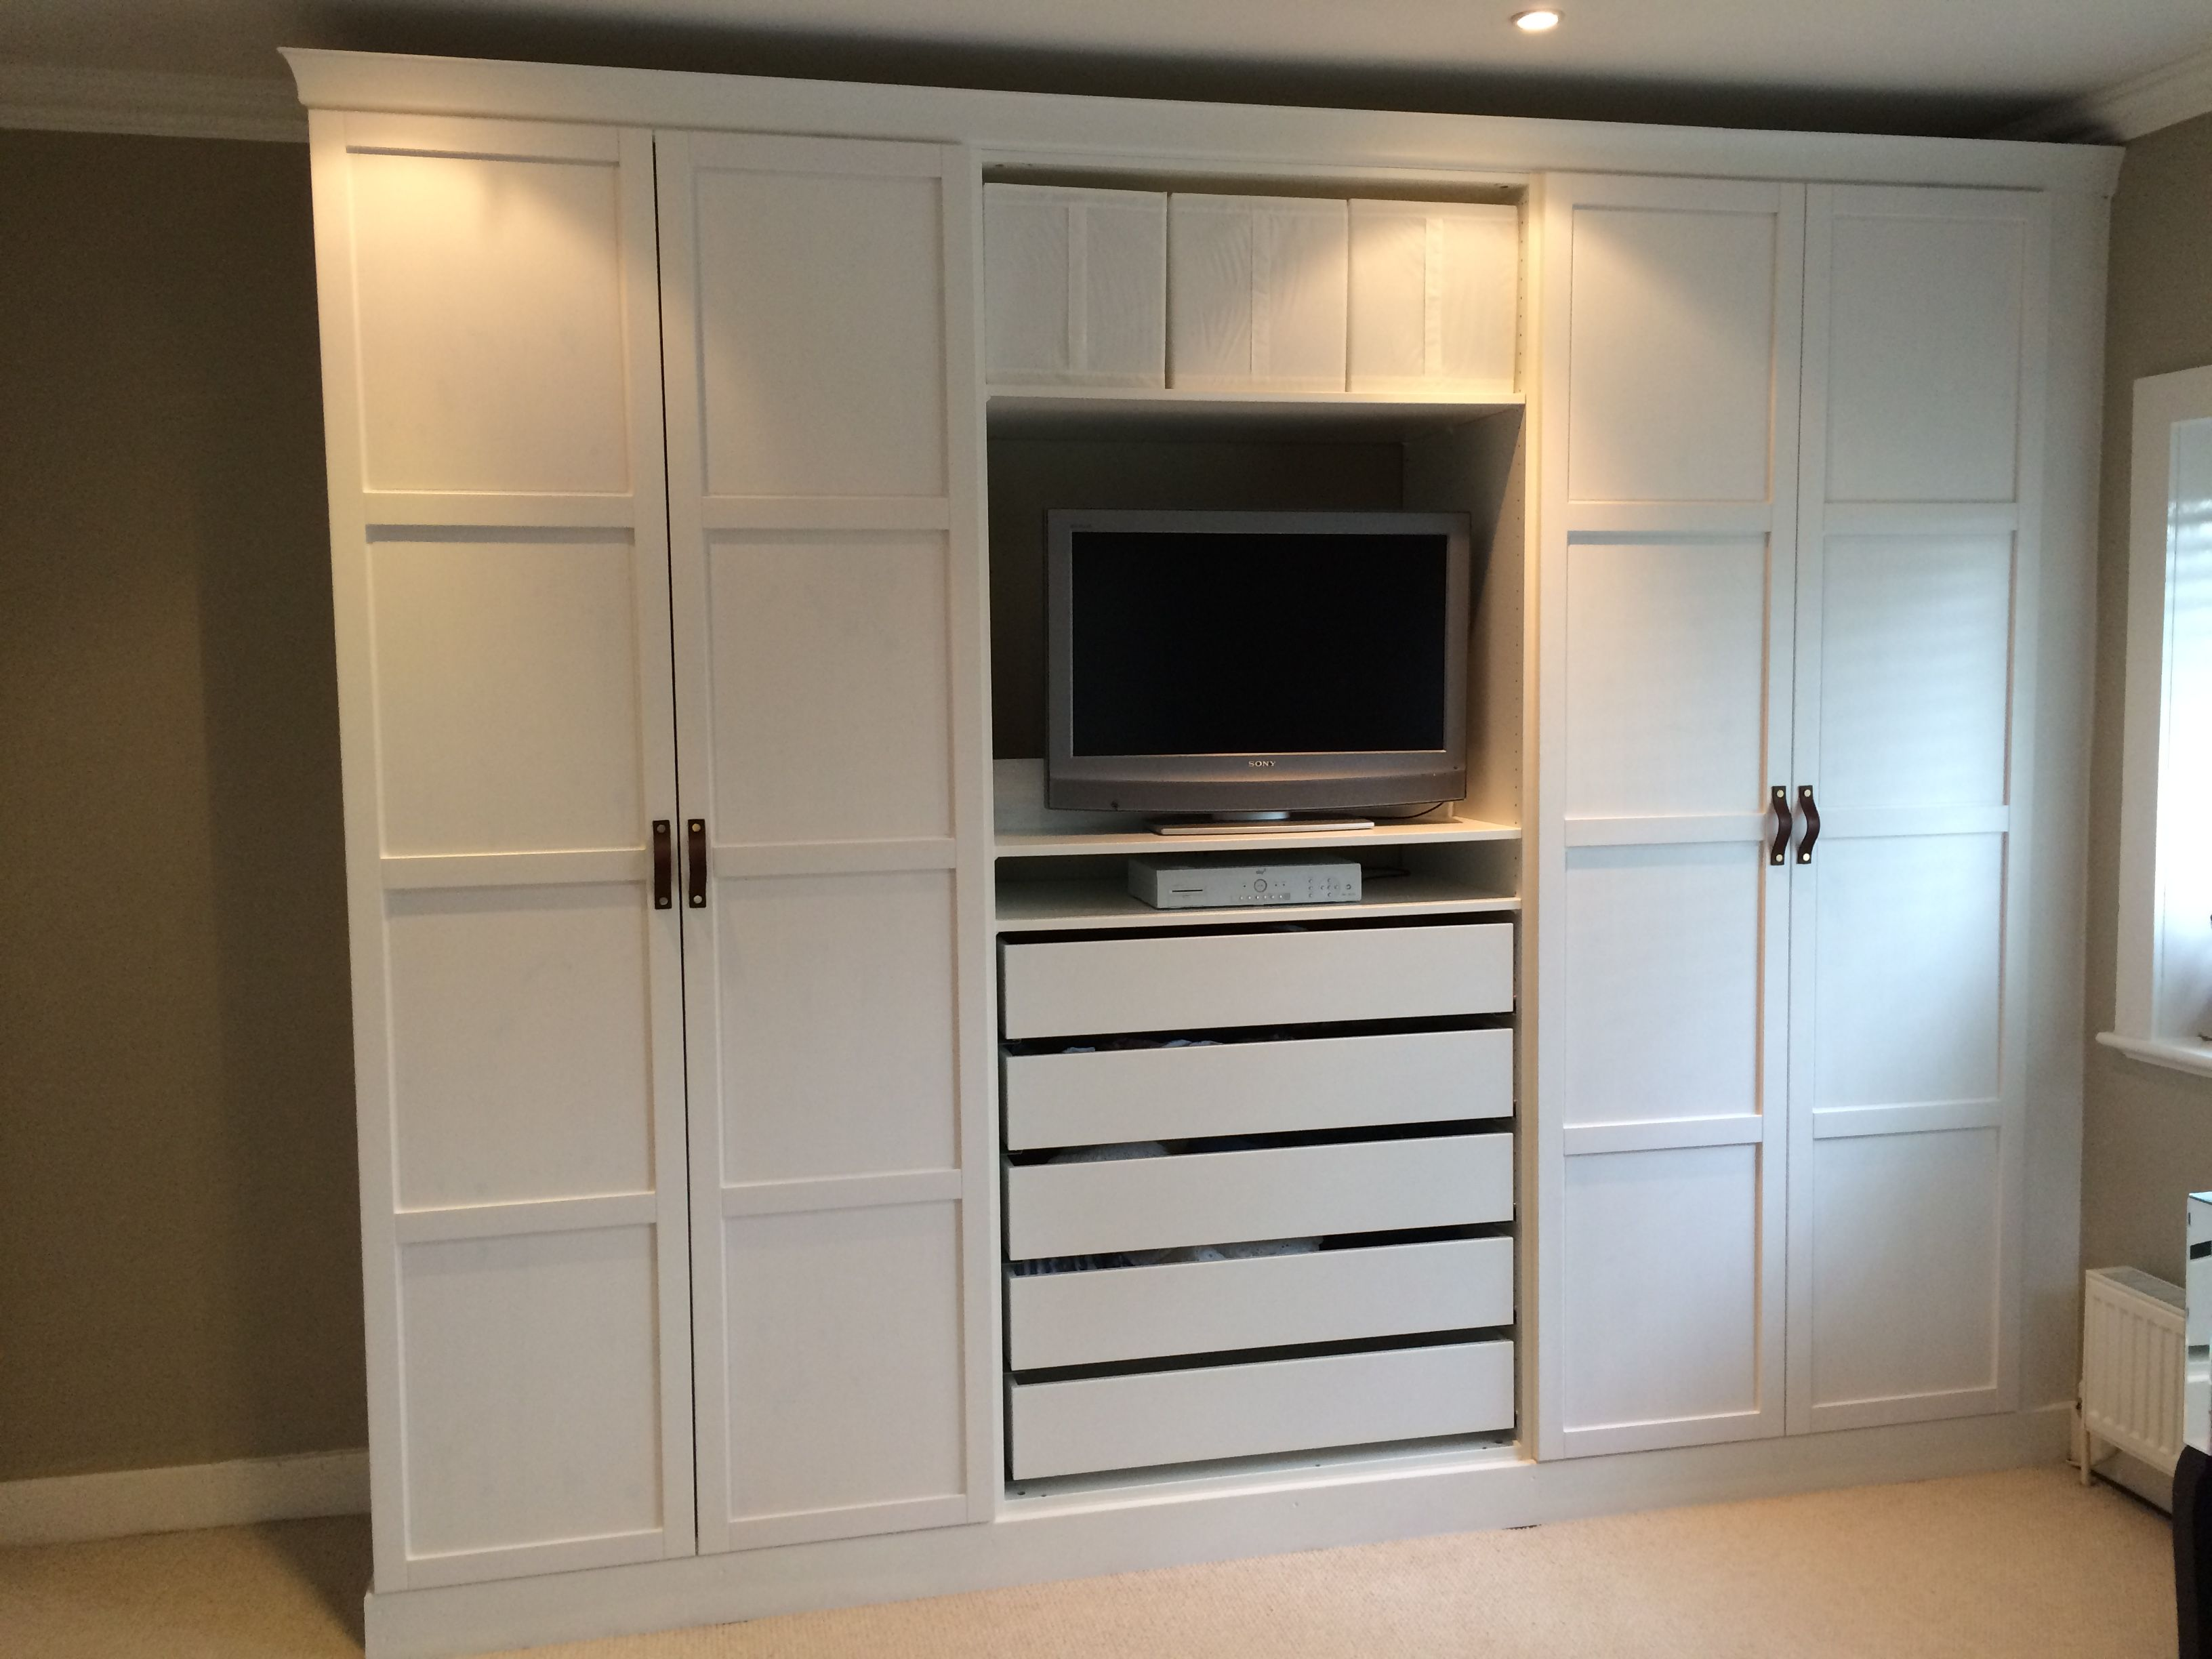 Ikea pax wardrobes hacked to look built in with leather for Bedroom ideas with built in wardrobes